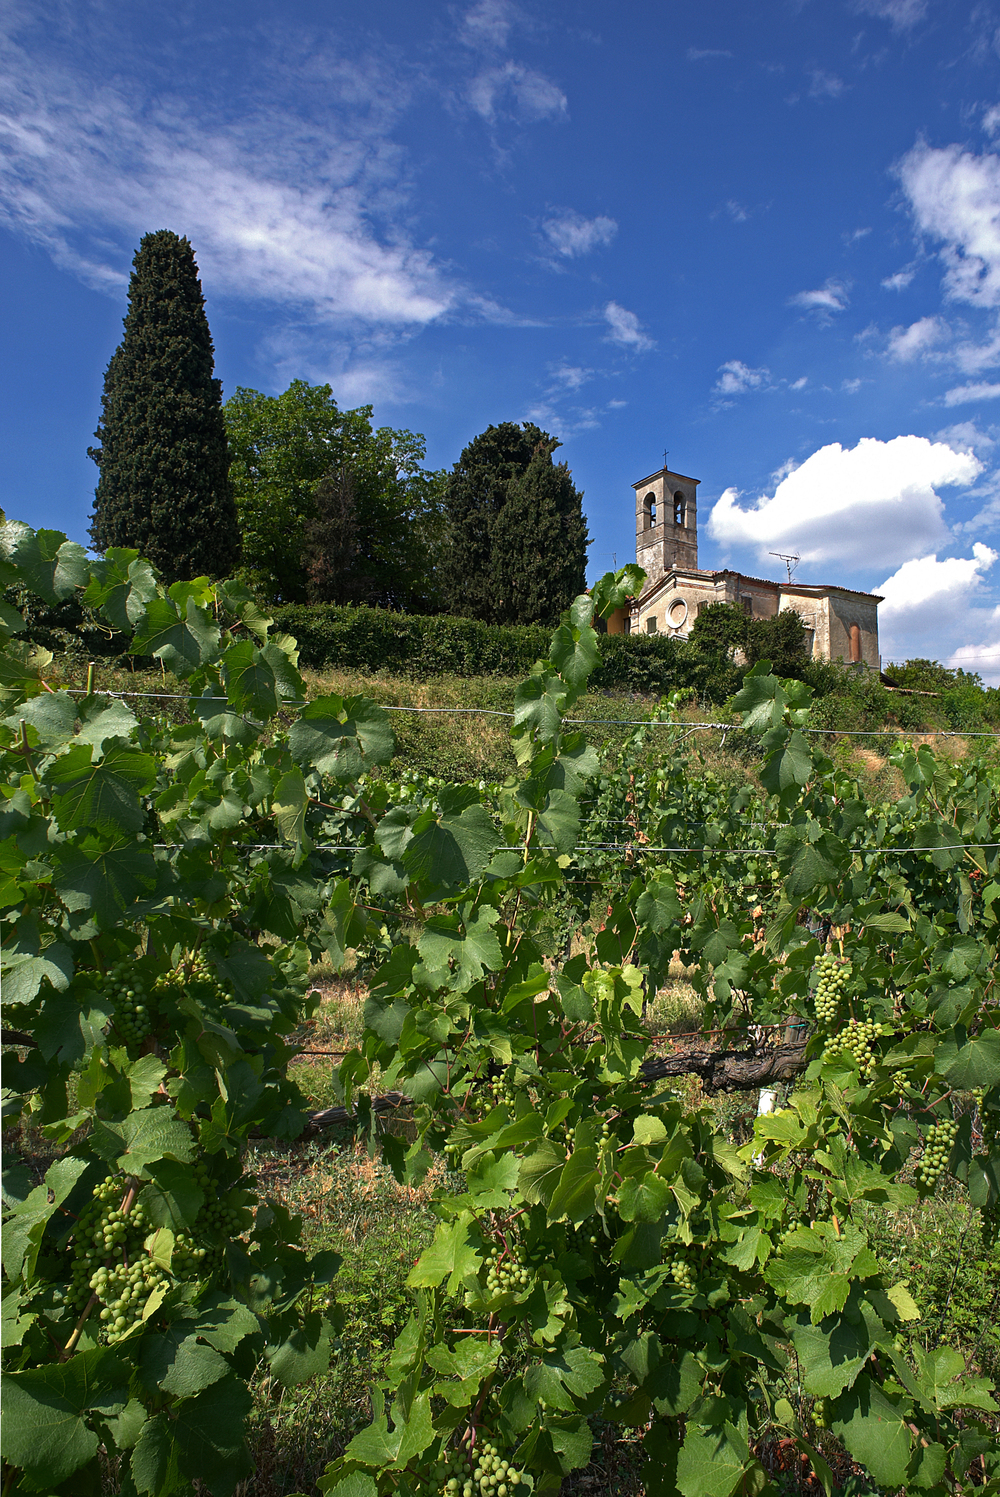 franciacorta church with vineyards.jpg